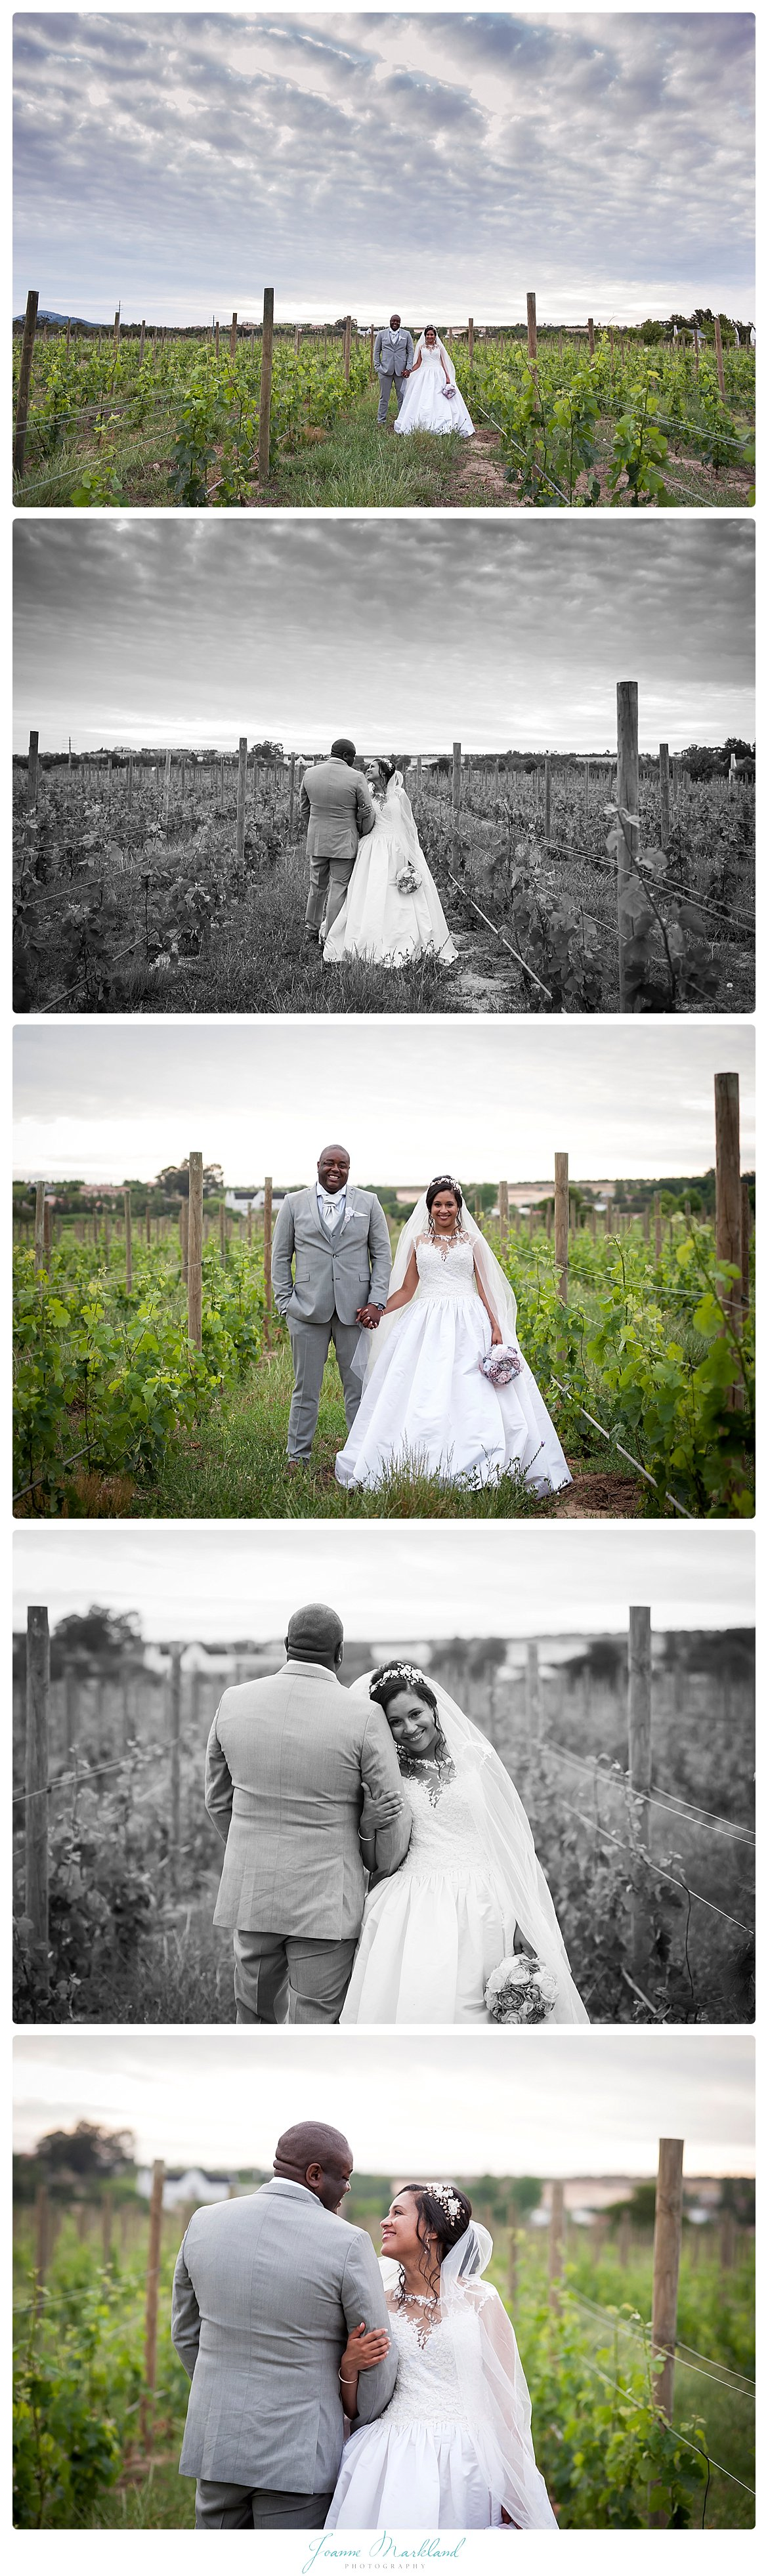 Val_de_vie_wedding_joanne_markland_photography_paarl-044